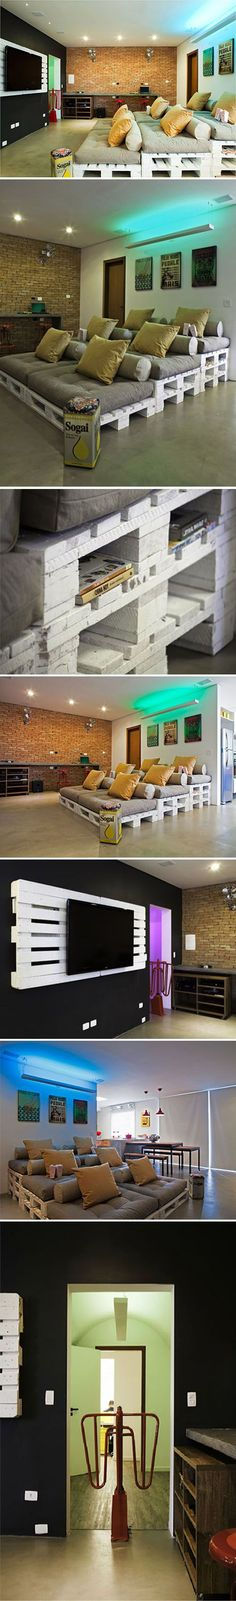 More ideas below: DIY Home theater Decorations Ideas Basement Home theater Rooms Red Home theater Seating Small Home theater Speakers Luxury Home theater Couch Design Cozy Home theater Projector Setup Modern Home theater Lighting System Home Theater Lighting, Home Theater Rooms, Home Theater Seating, Cinema Room, Home Theater Design, Cinema Cinema, Furniture Layout, Pallet Furniture, Pallet Sofa